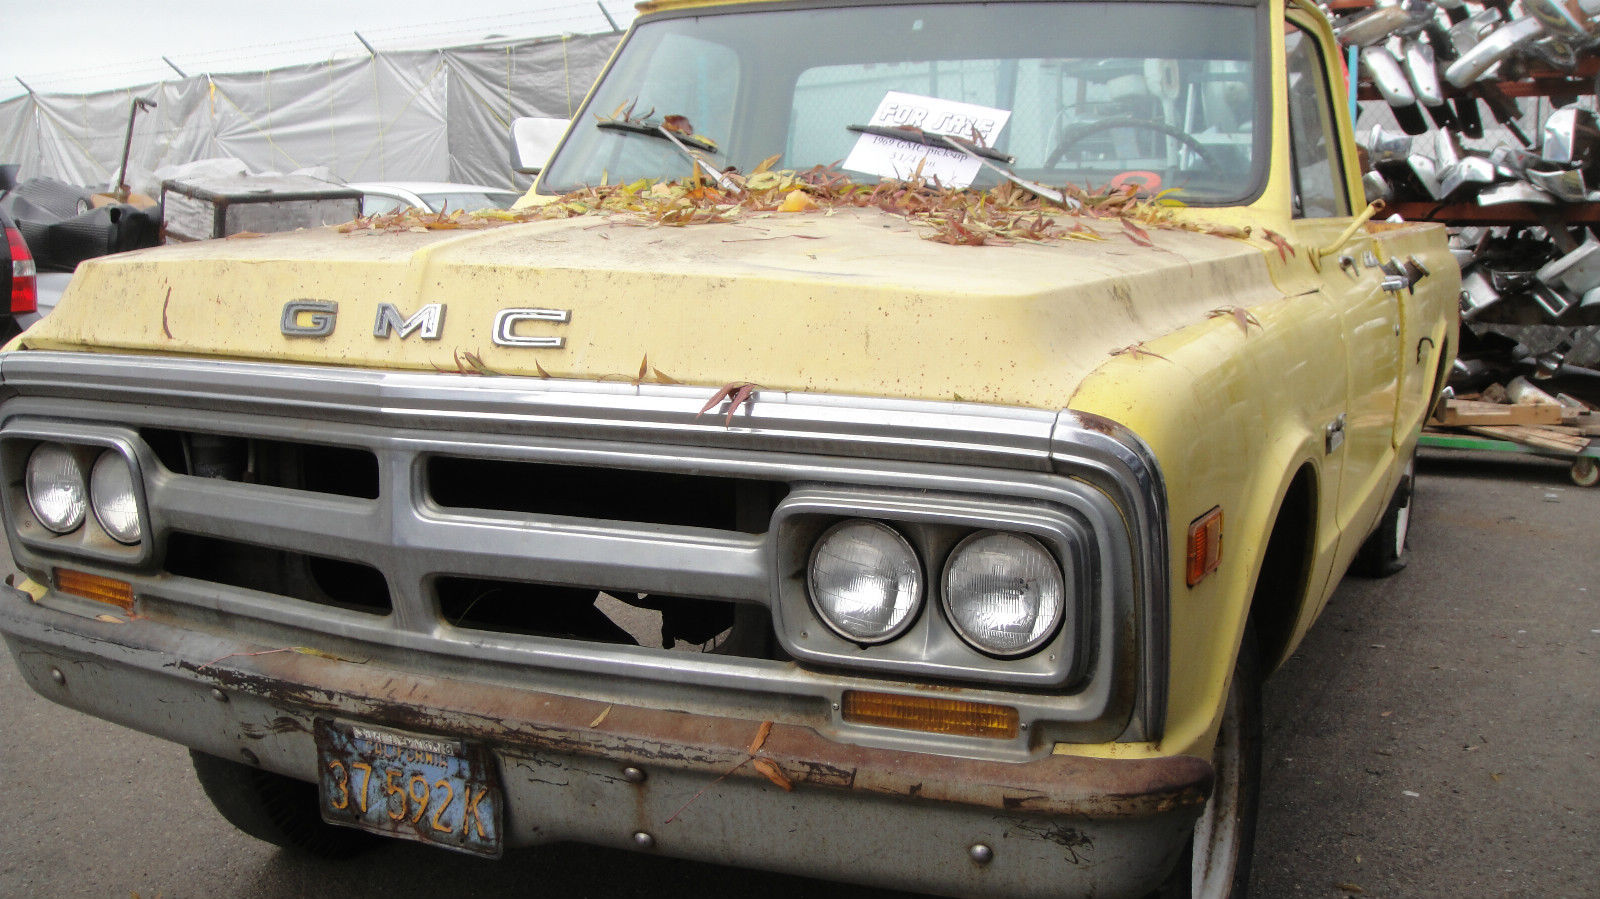 Gmc Sierra Truck Bed For Sale 28 Images 1972 Gmc